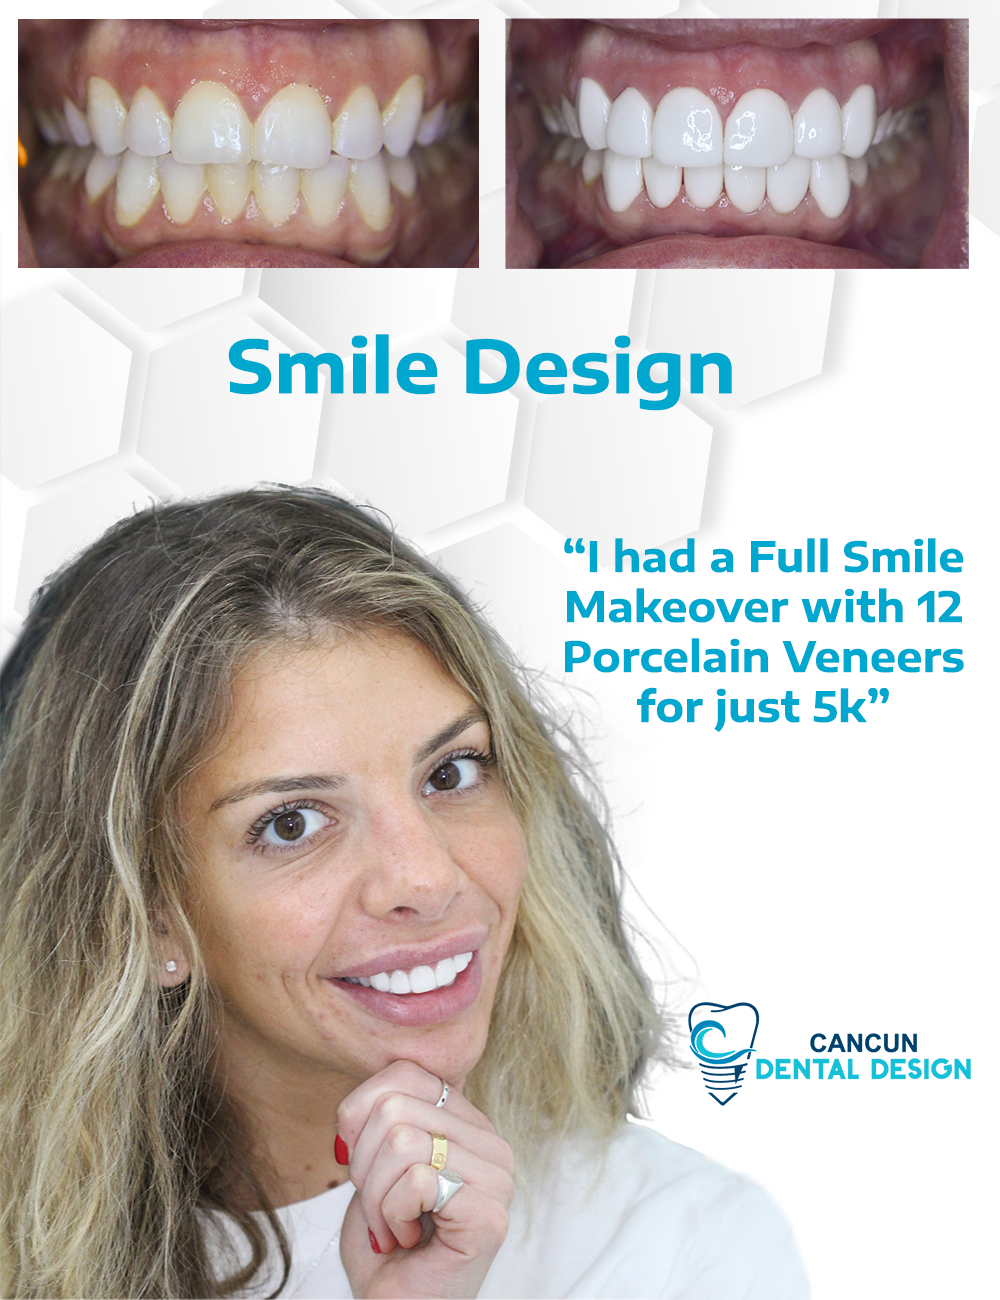 Before and after smile design